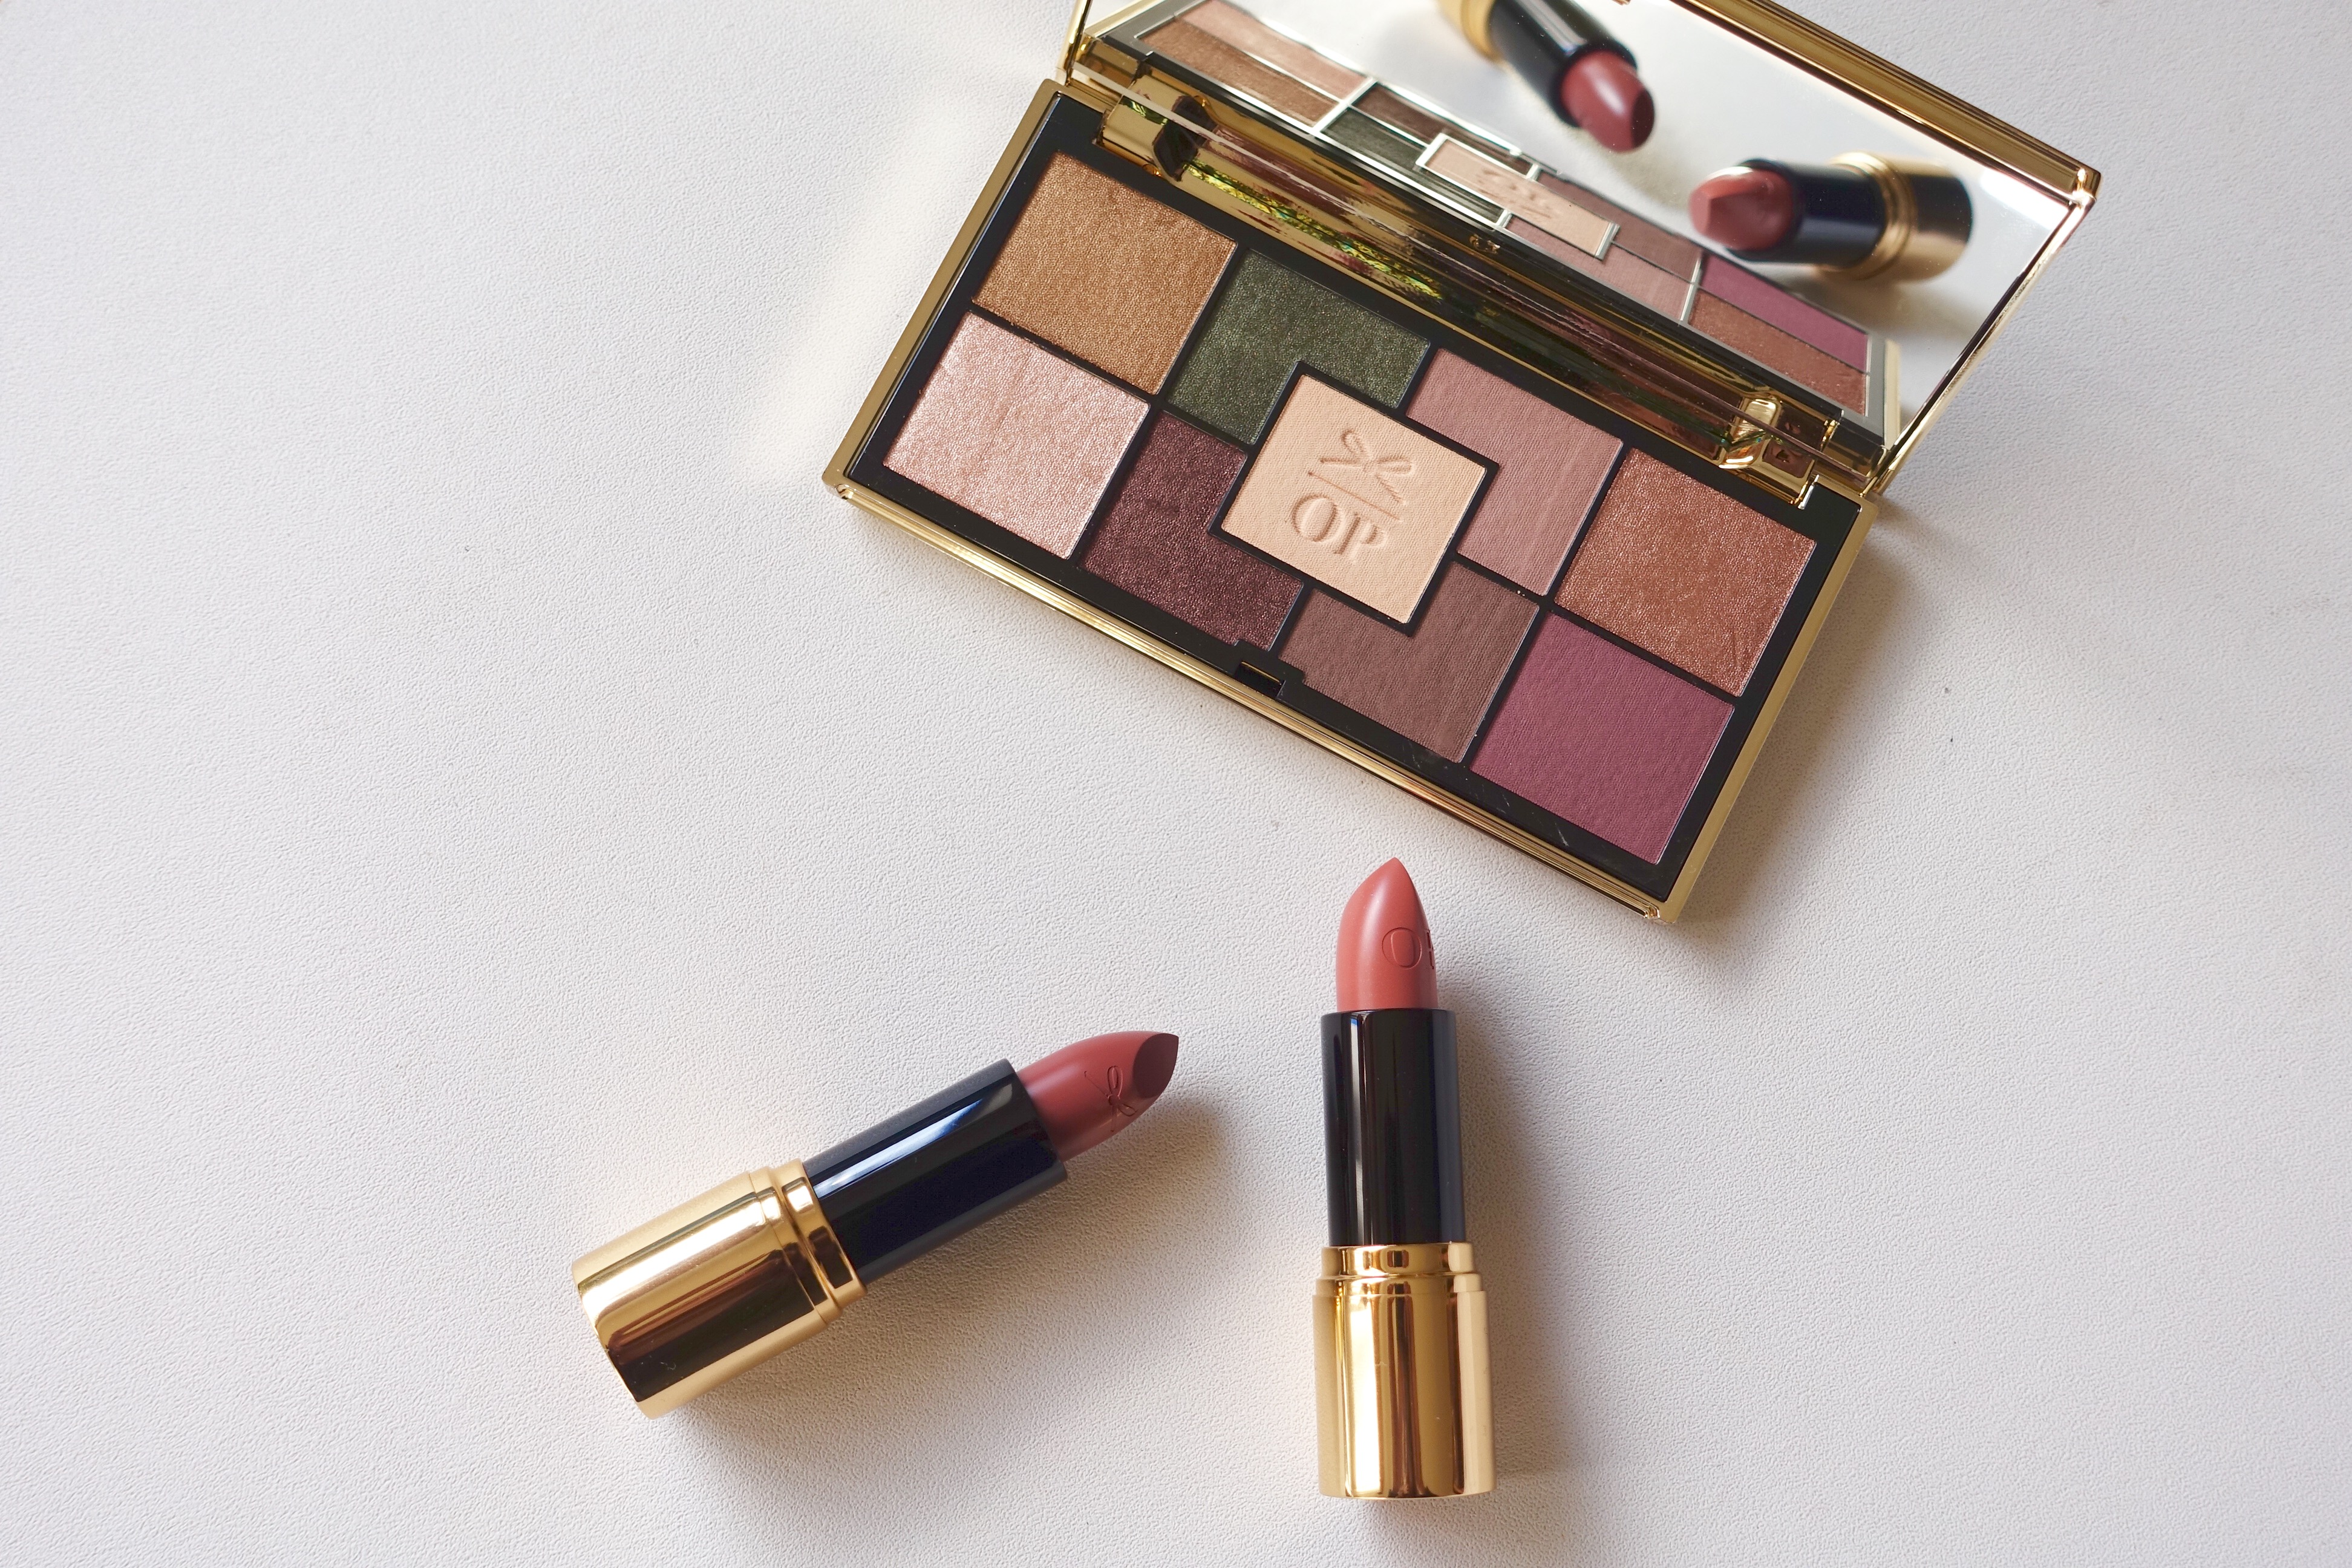 THE PERFECT SMOKEY EYE WITH CIATE'S OLIVIA PALERMO PALETTE!